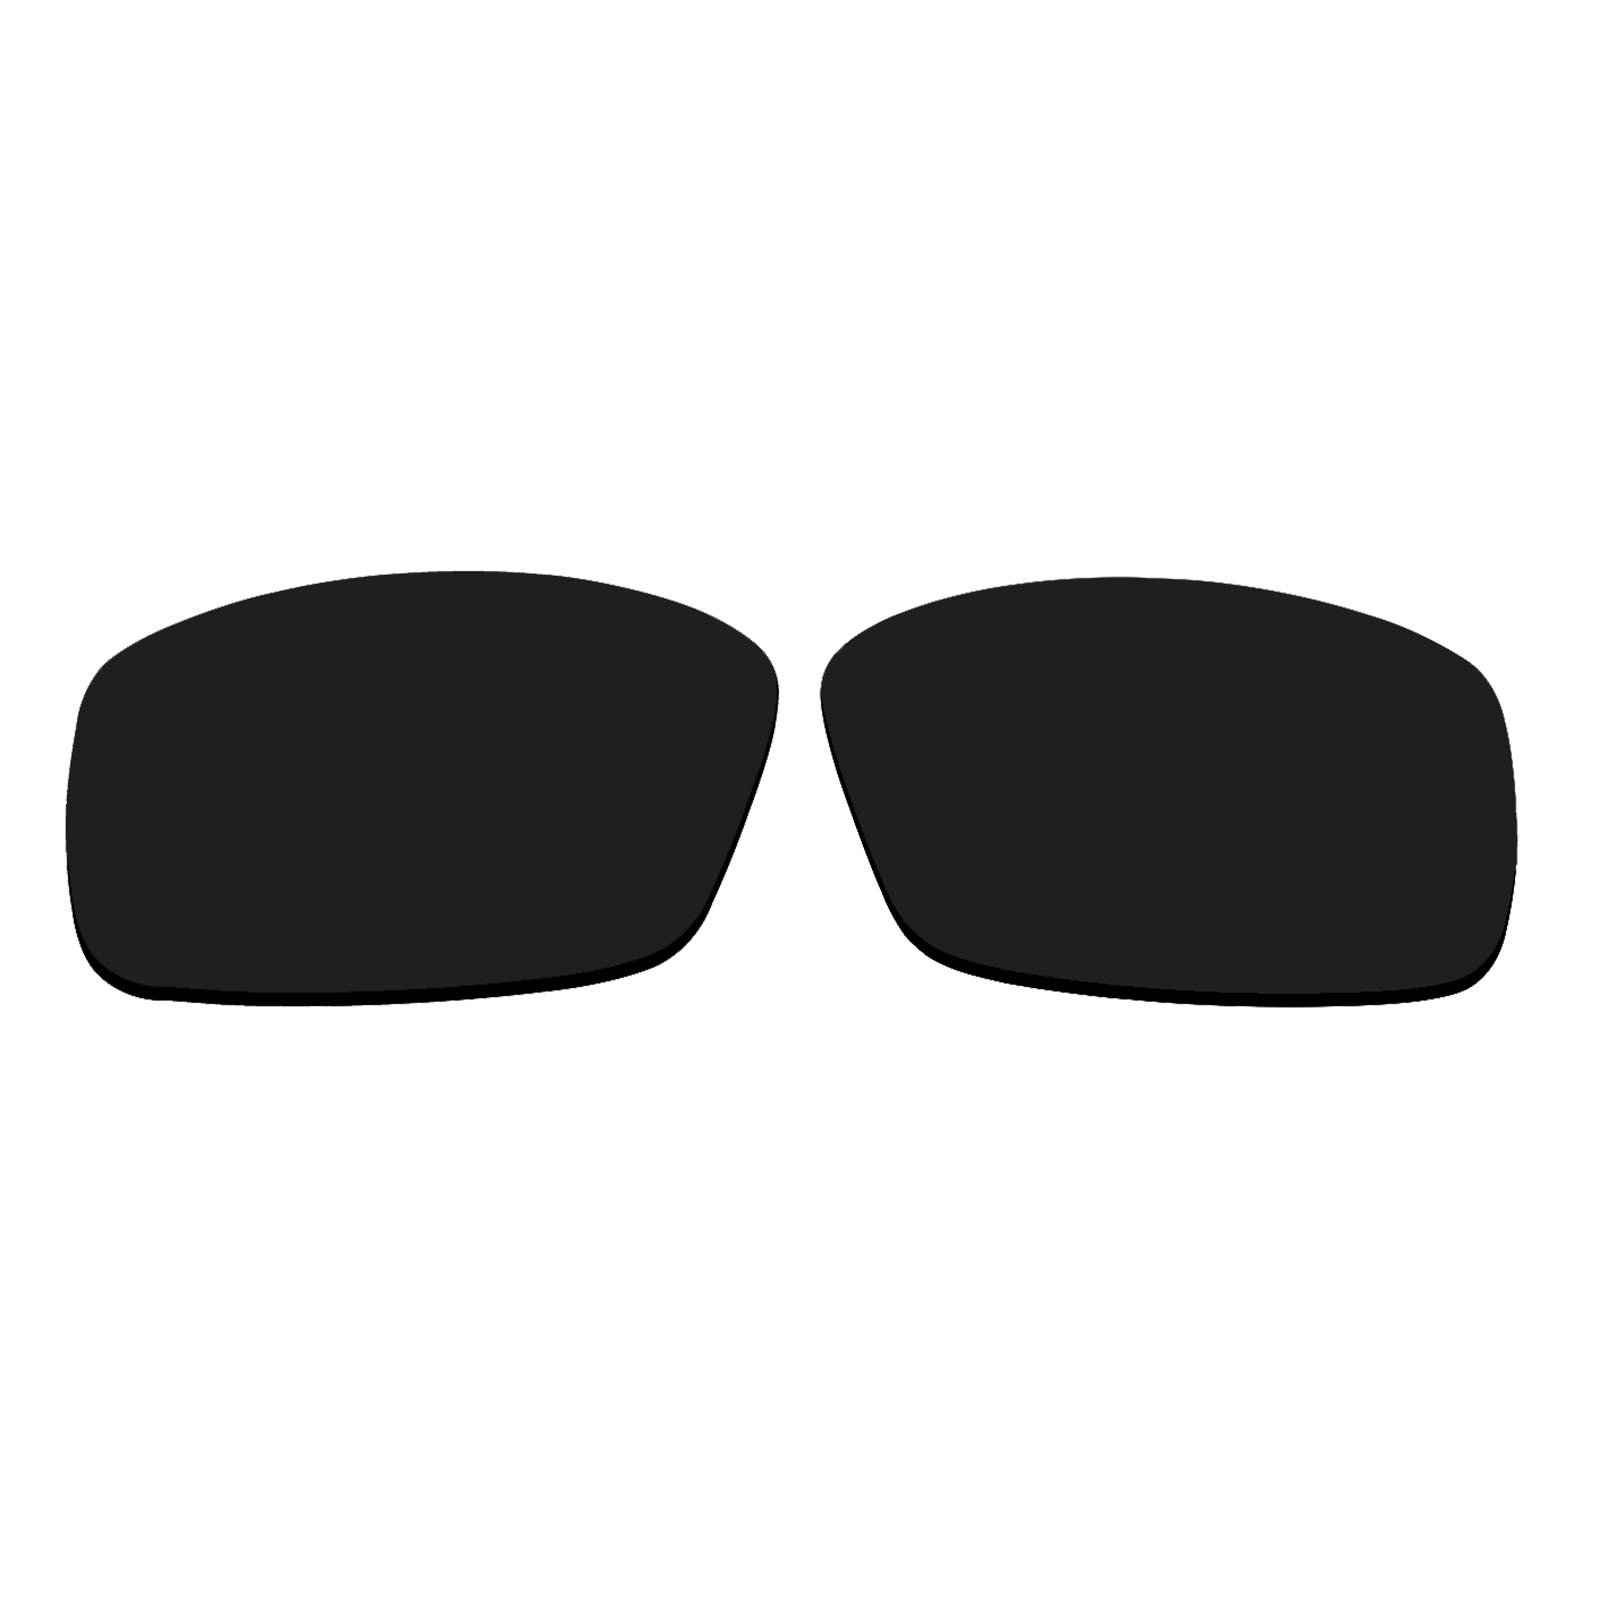 Polarized Replacement Sunglasses Lenses for Spy Optics Admiral (Black) by oGeee